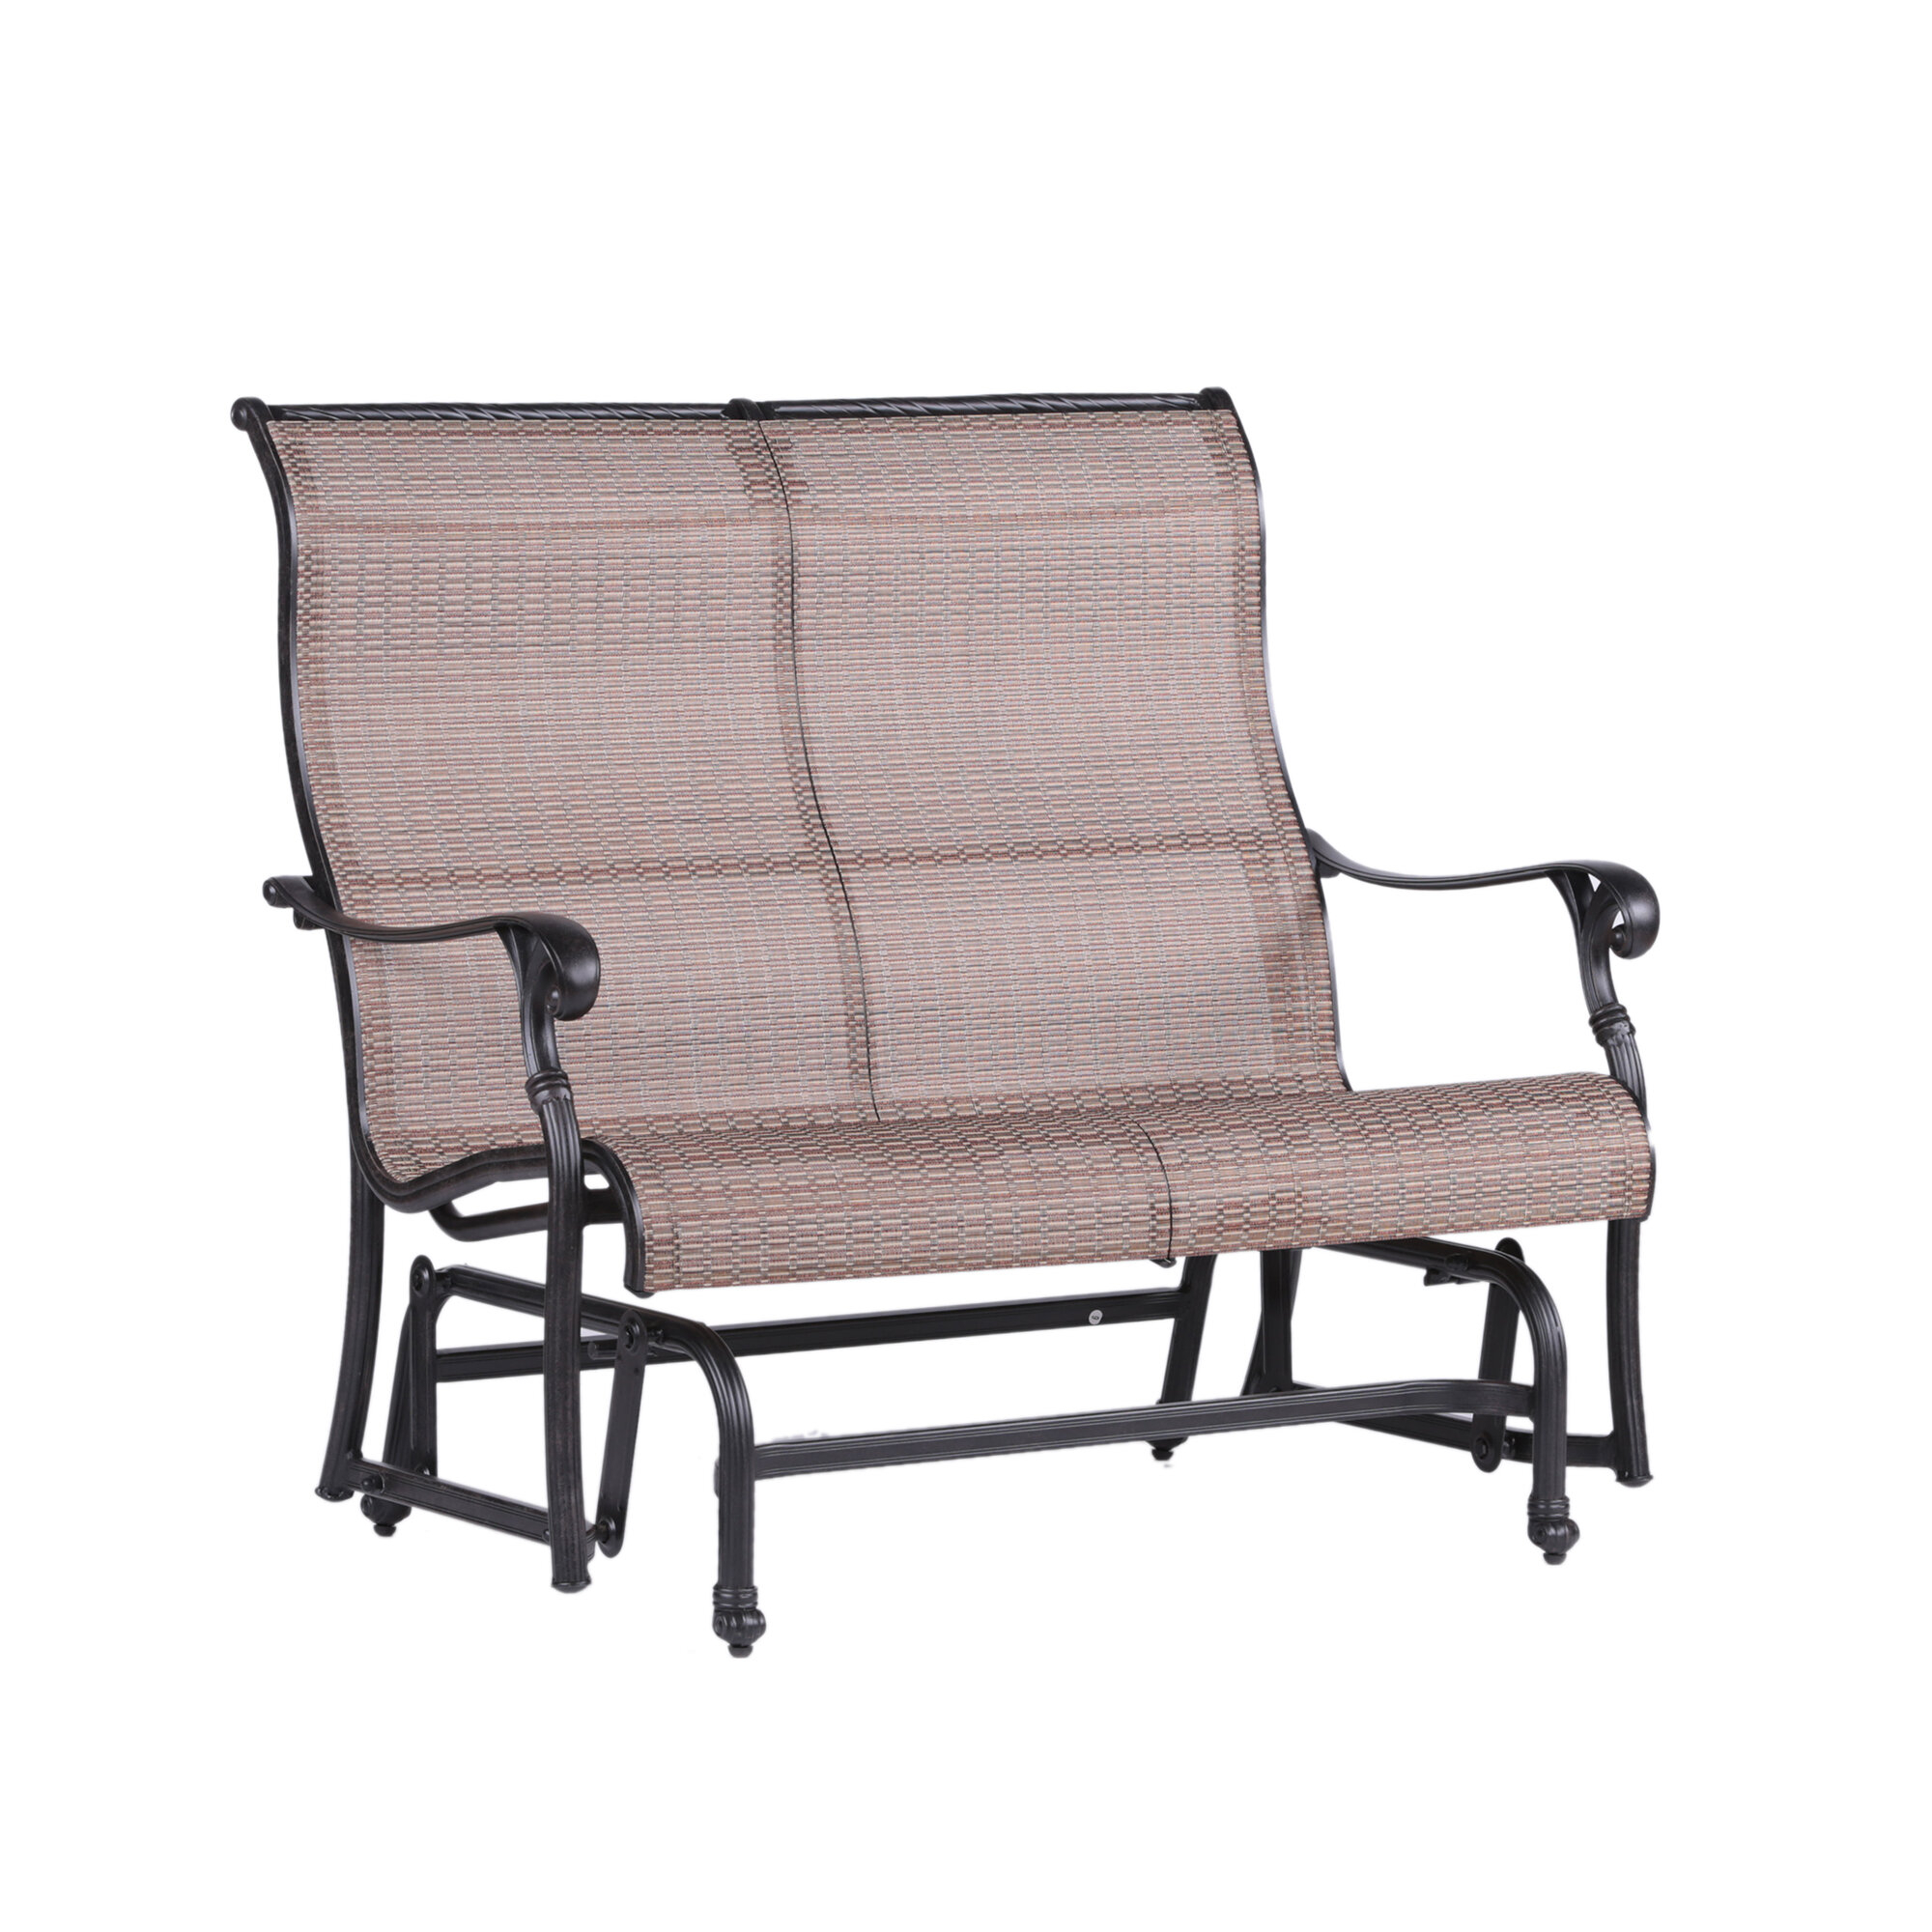 Germano Double Glider Bench With Cushion Regarding Glider Benches With Cushion (View 24 of 25)